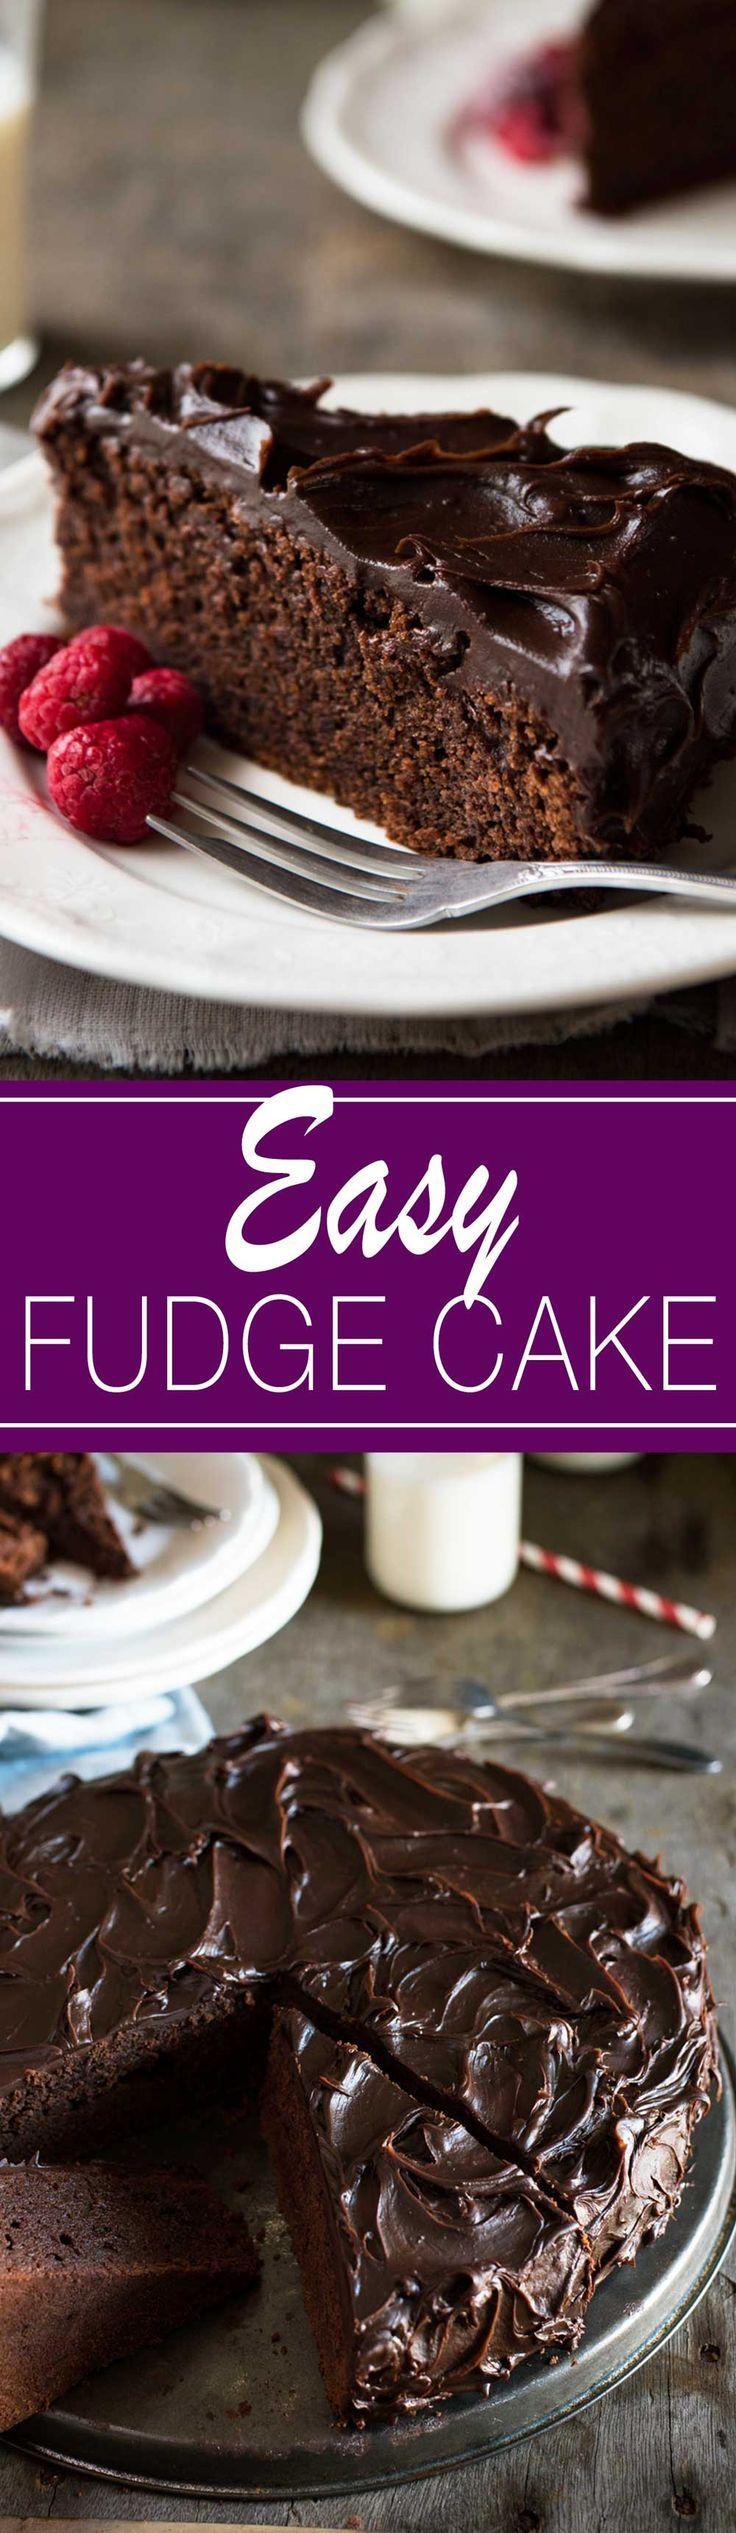 Chocolate Fudge Mud Cake | I made this yesterday, it is INSANELY delicious and so easy!!